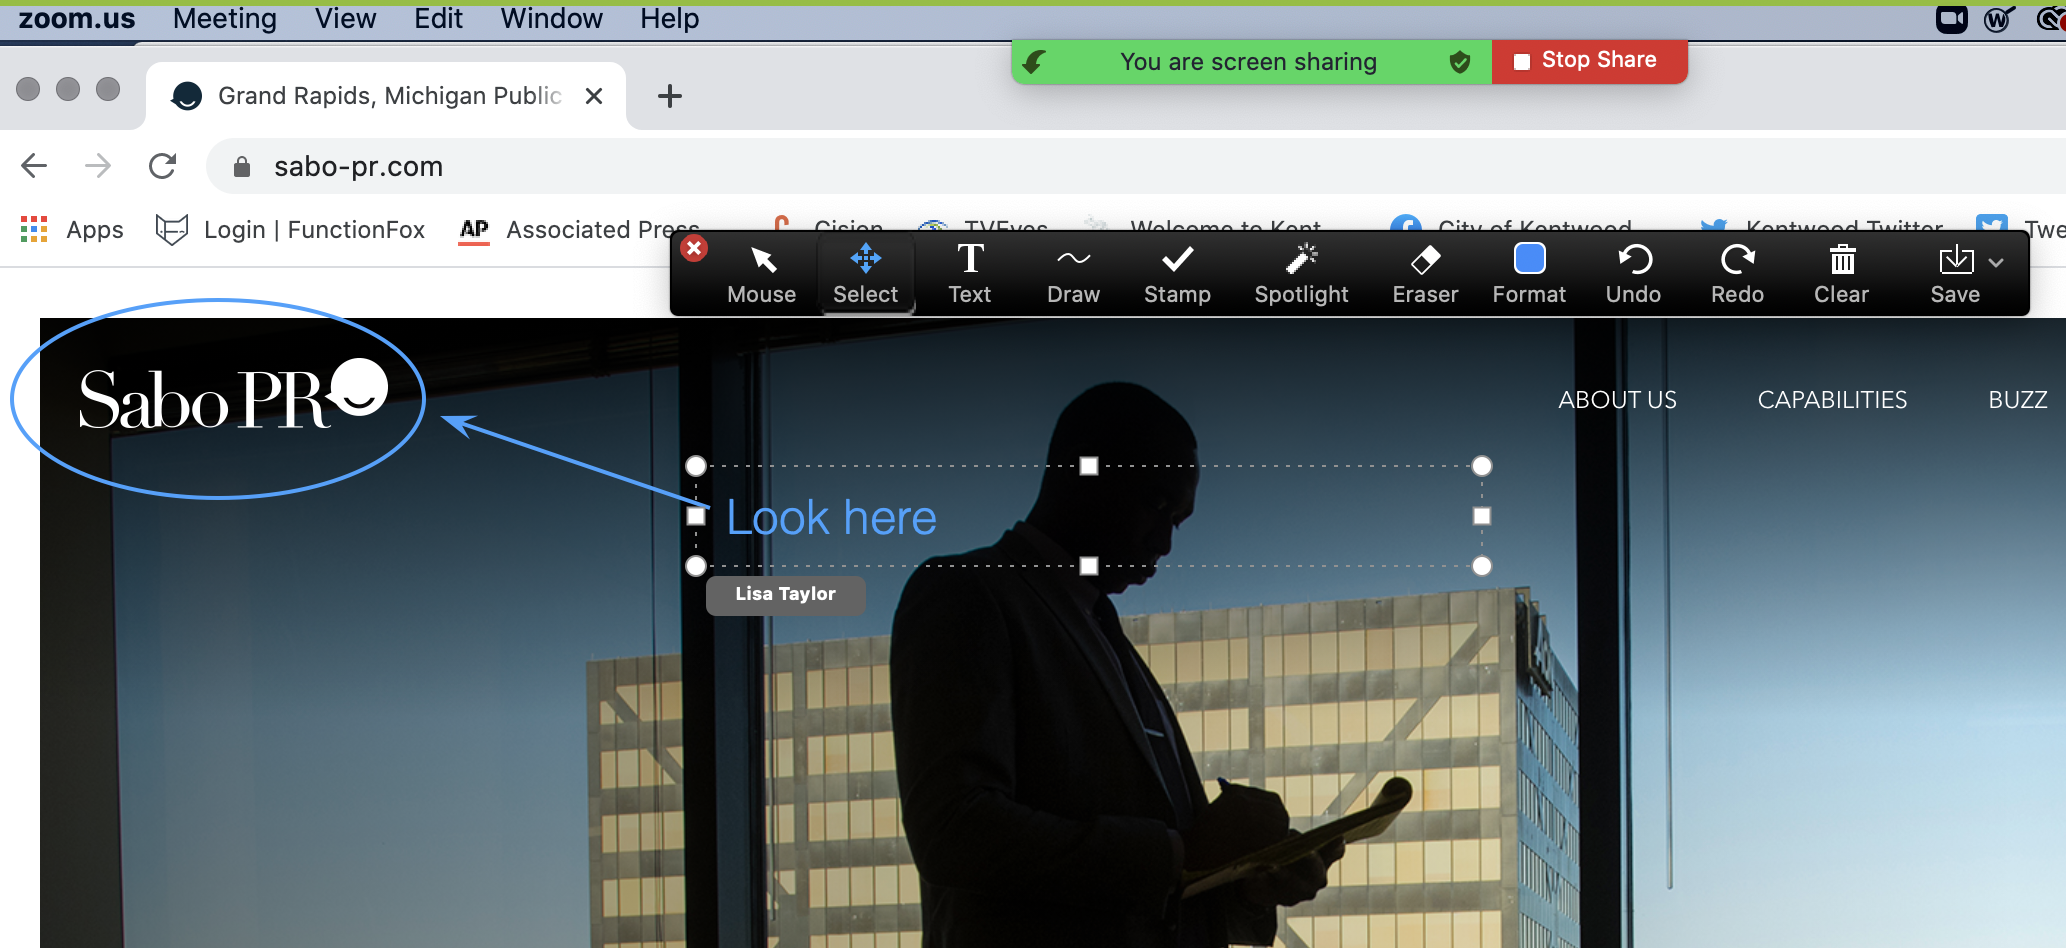 Zoom tech tool that allows you to annotate on a shared screen. Annotation tools, such as draw and add text, are displayed at the top of the screen.